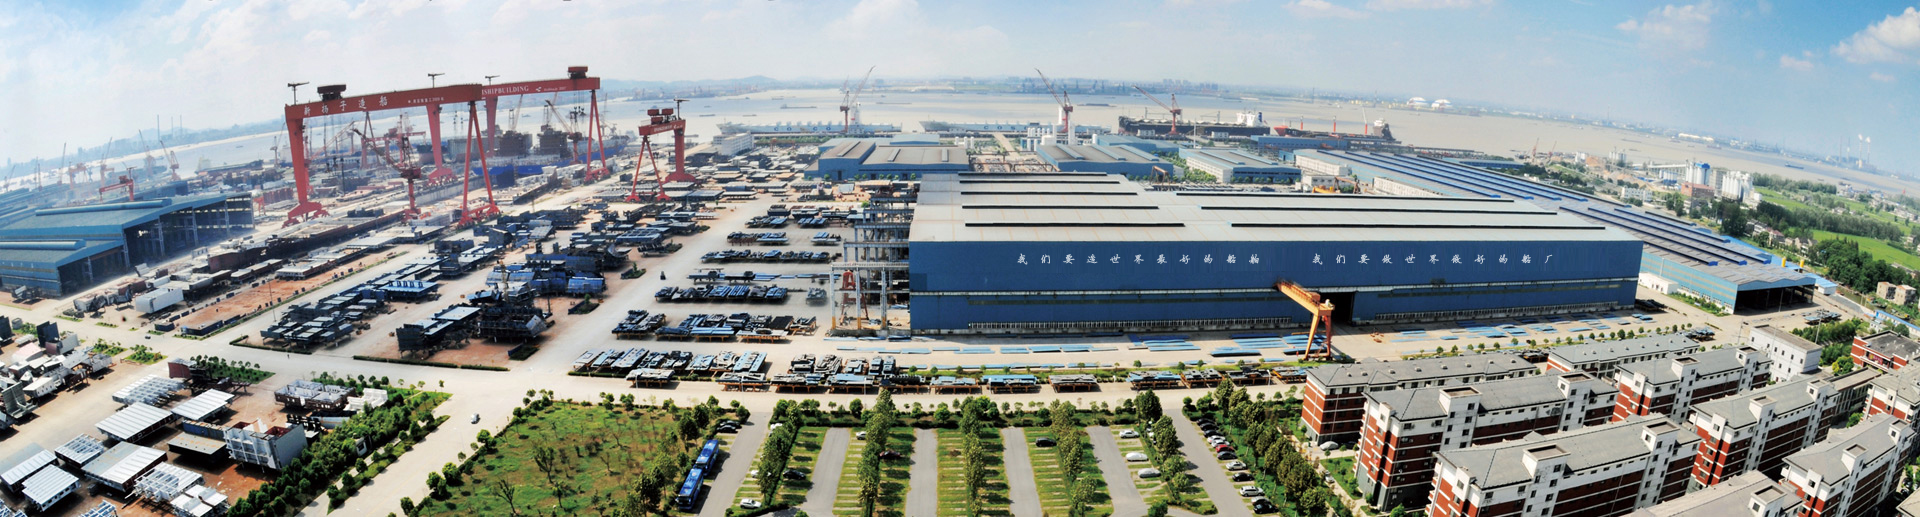 JIANGSU NEW YANGZIJIANG SHIPBUILDING CO.,LTD.